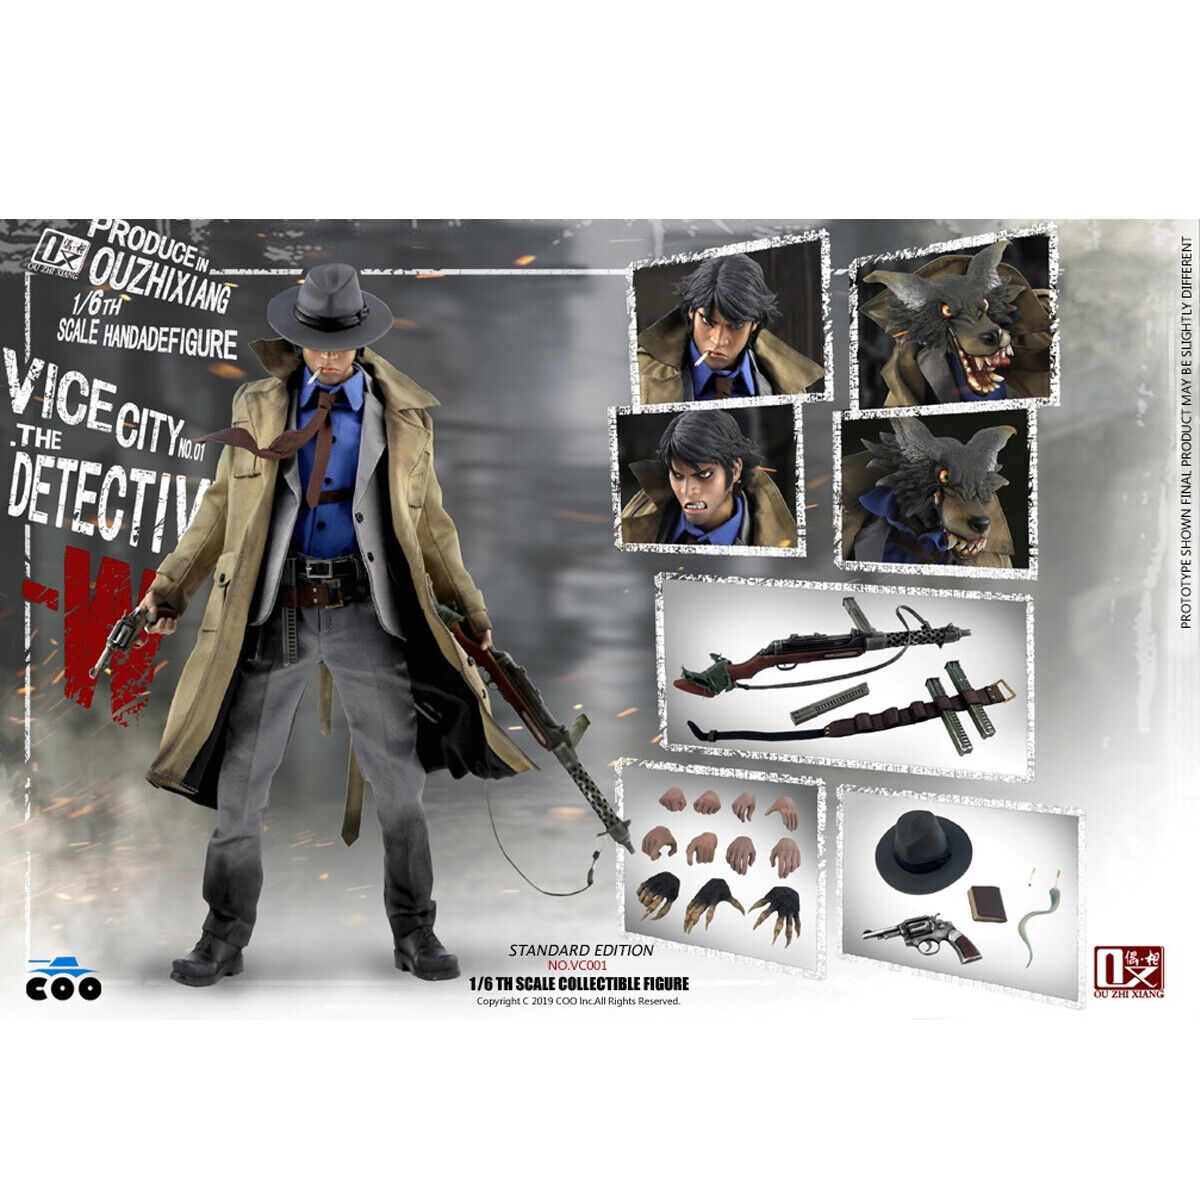 1 6 COOMODEL X OUZHIXIANG VC001 Vice City The Detective W 12  Action Figure Toys